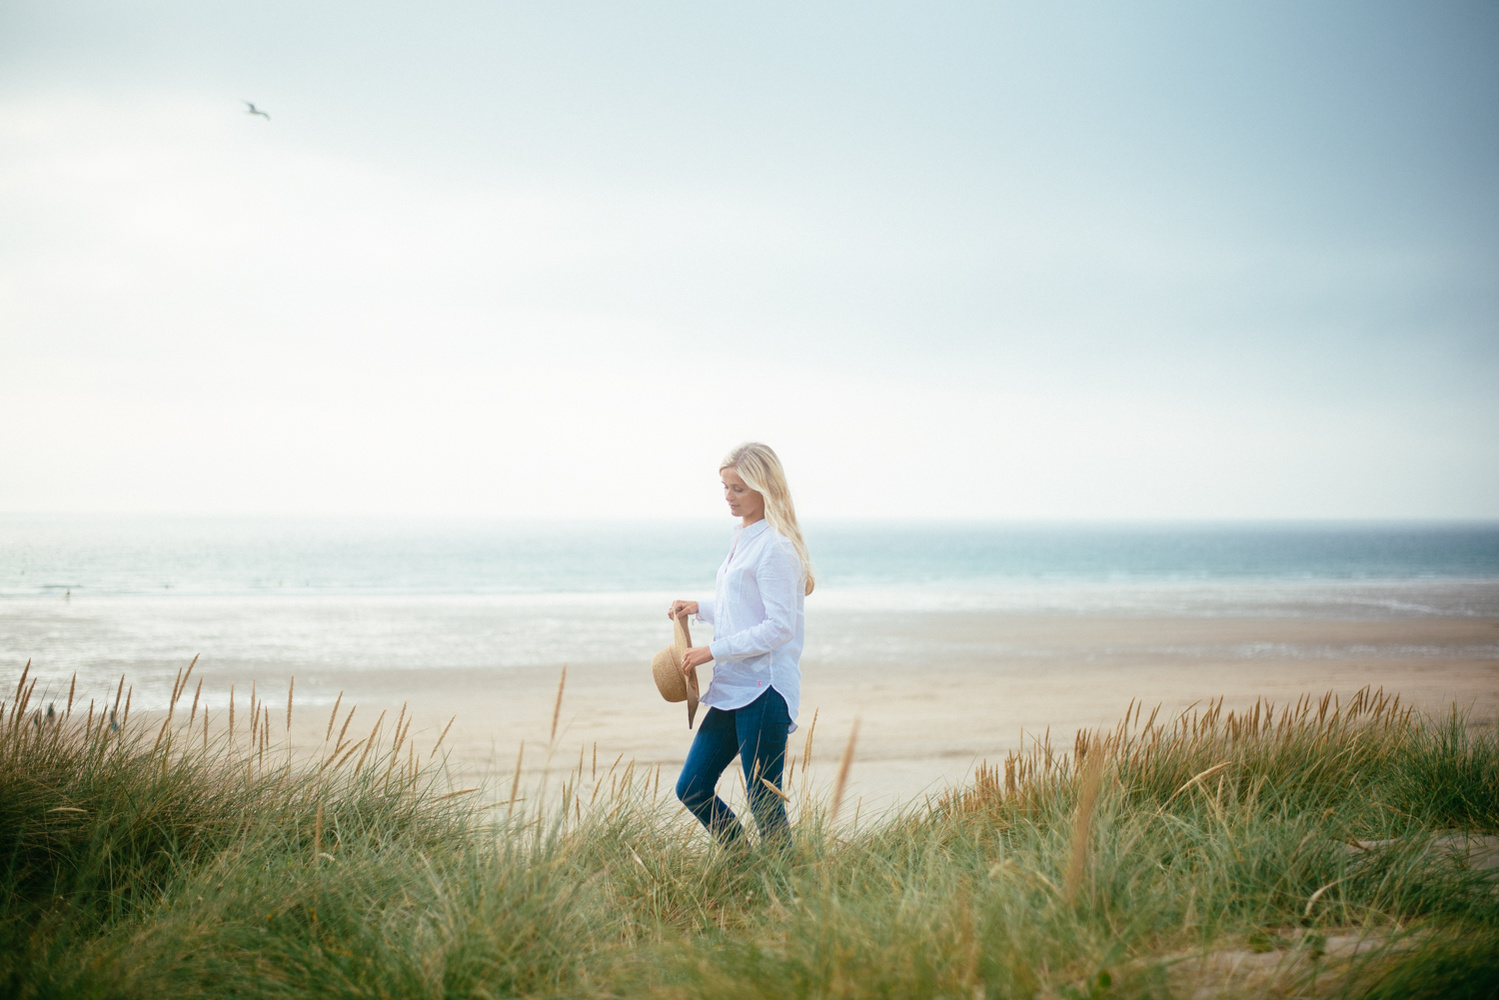 Young blonde woman walking by a beach.